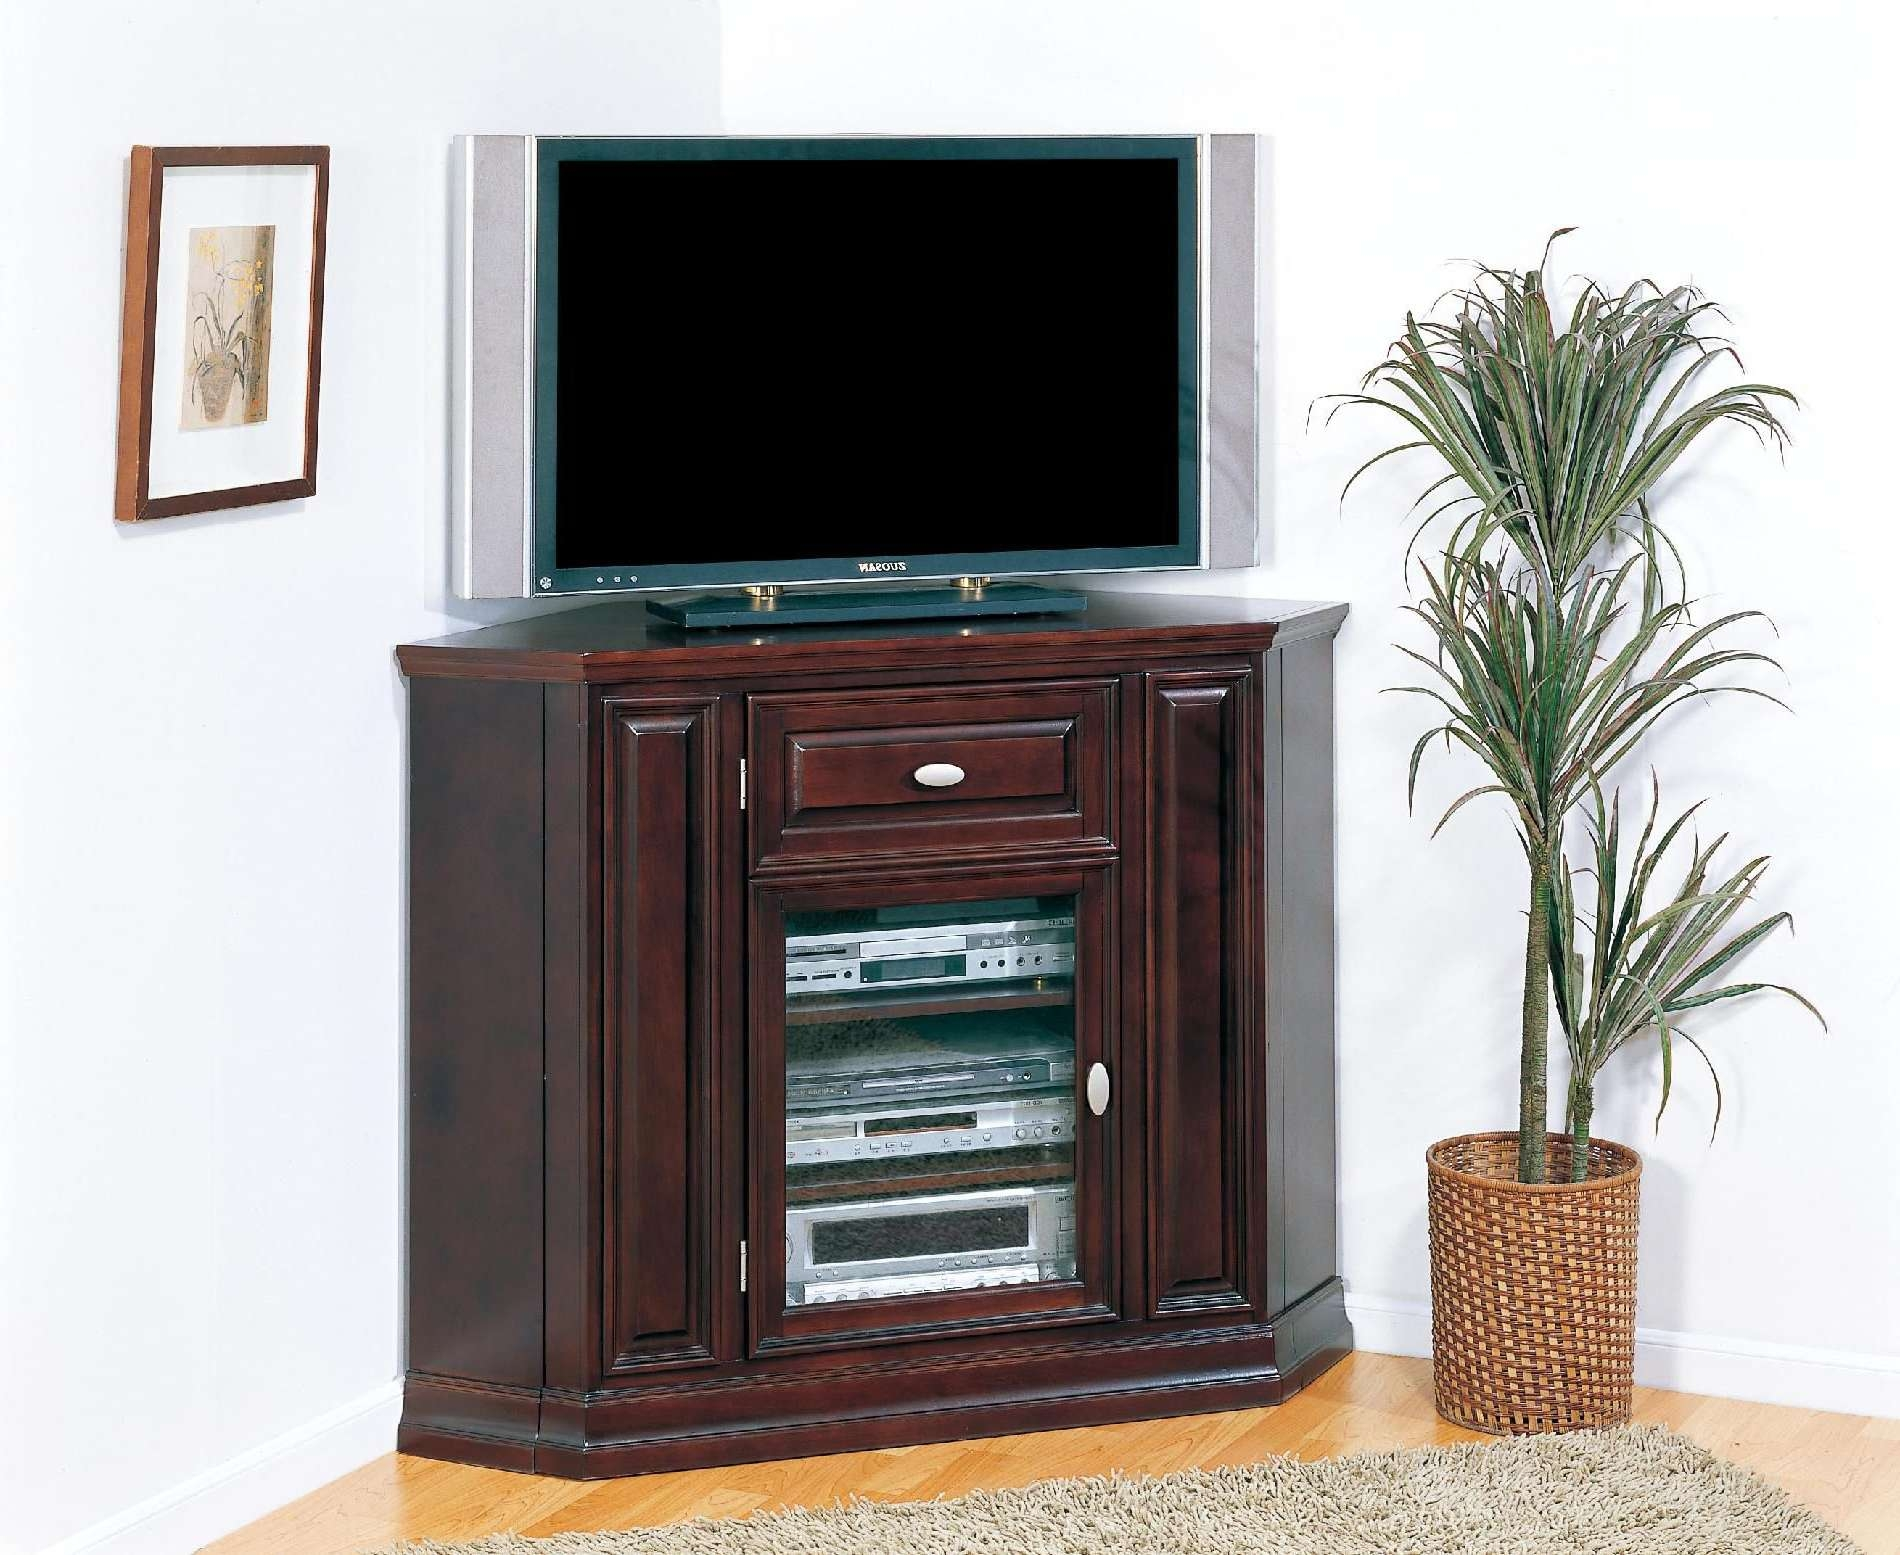 Tall Corner Tv Cabinet With Glass And Wood Doors Plus Drawer Of Inside Black Corner Tv Cabinets With Glass Doors (View 5 of 20)